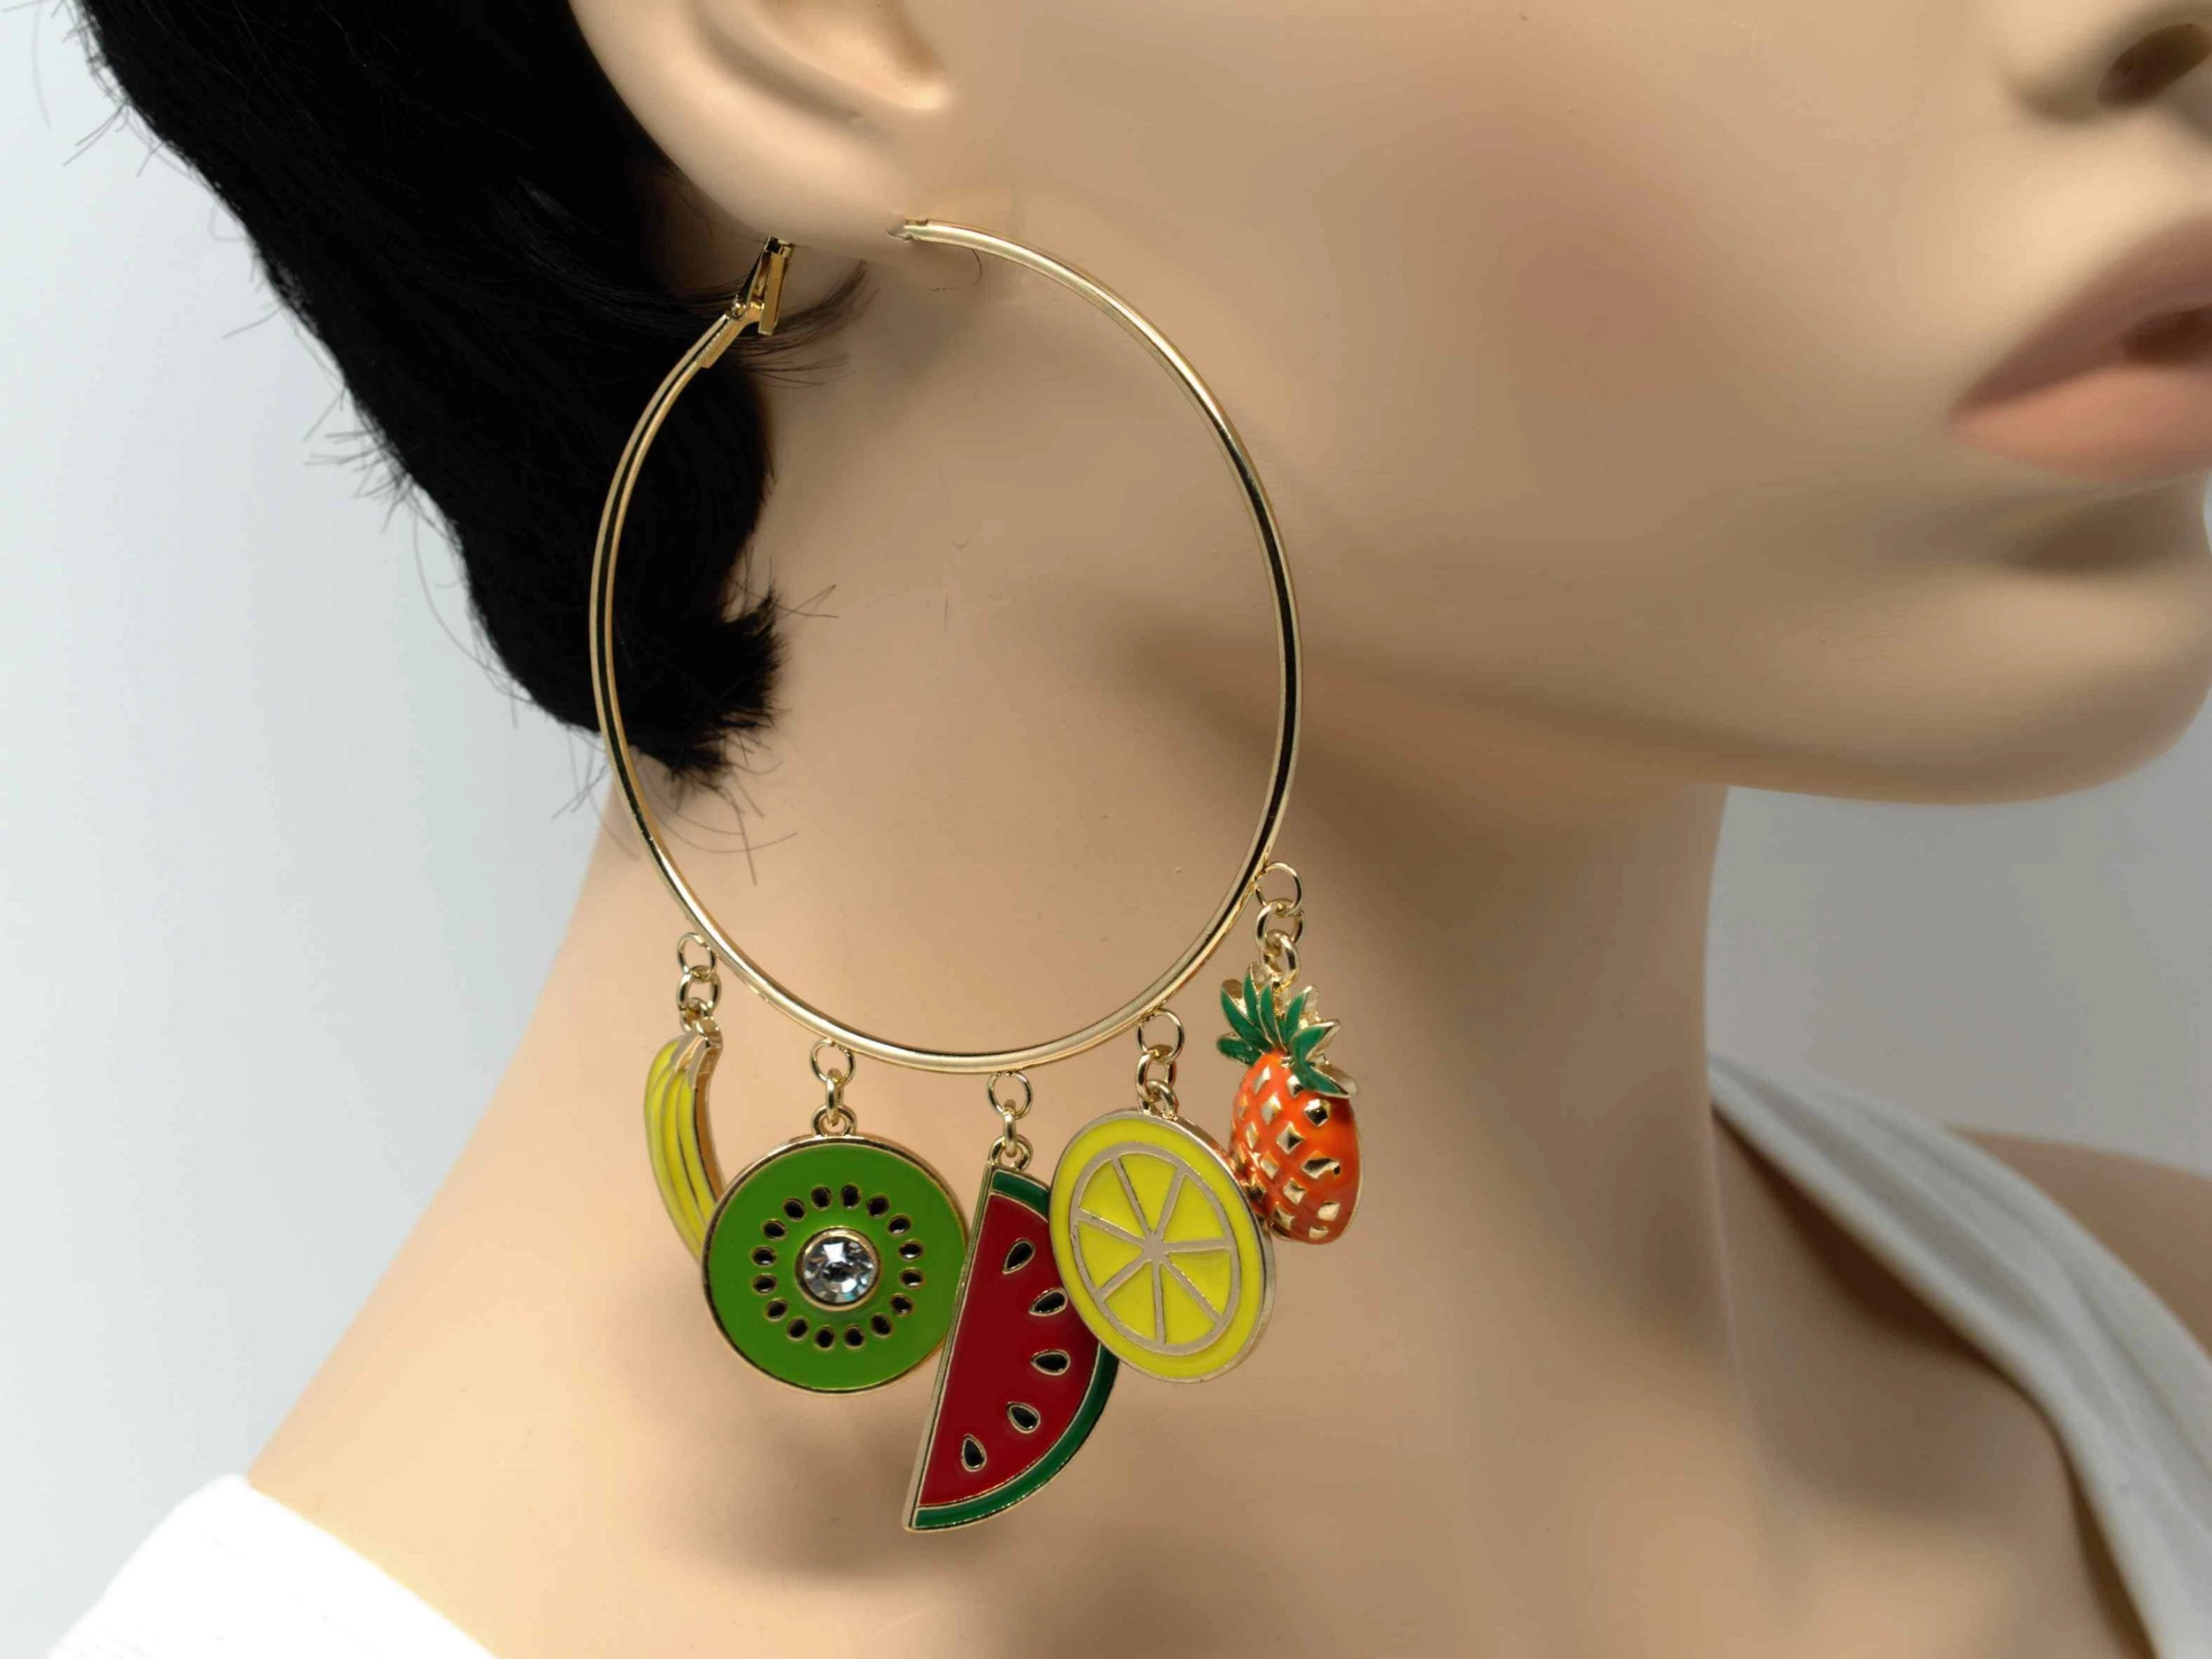 An exotic gold hoop fashion earring with tropical fruit charms.